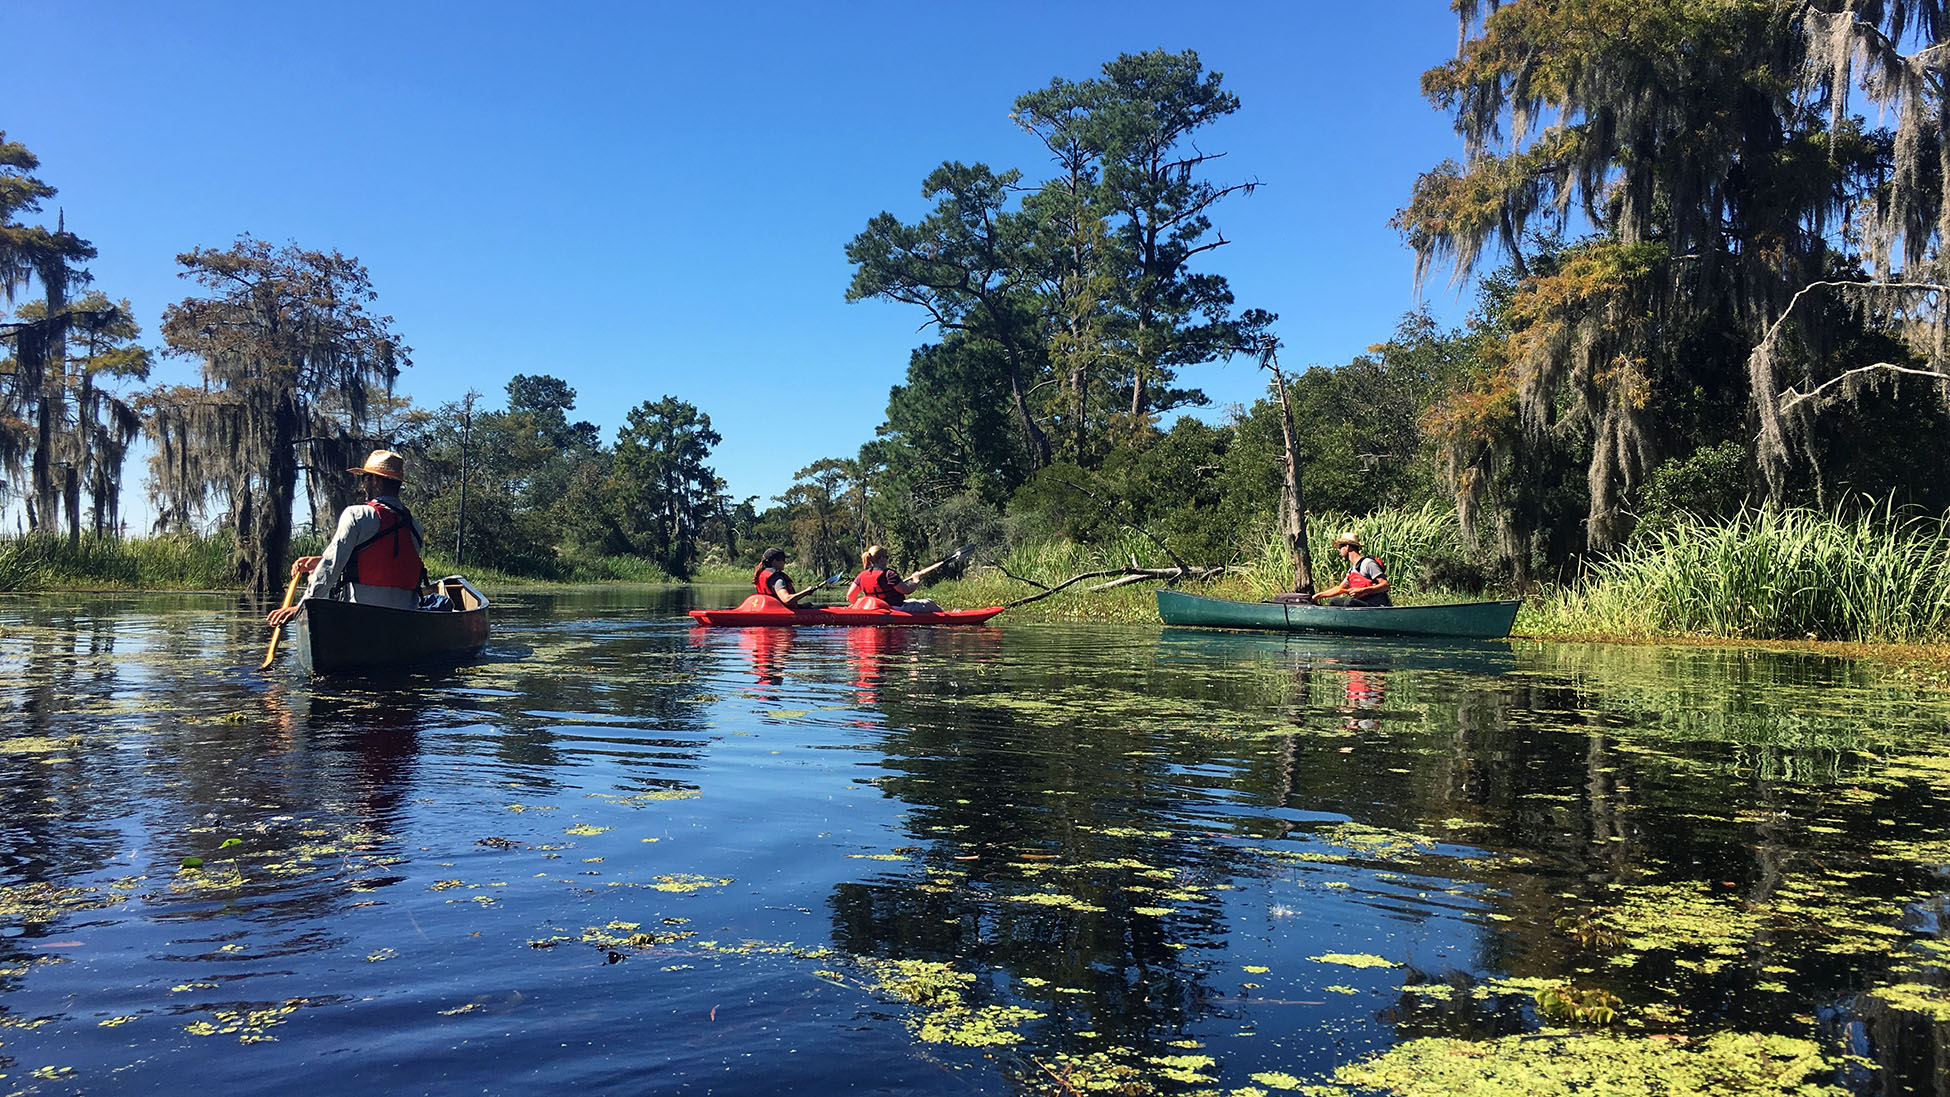 One of the best ways to explore Louisiana's Northshore is kayaking through area bayous. Photo by MeLinda Schnyder.